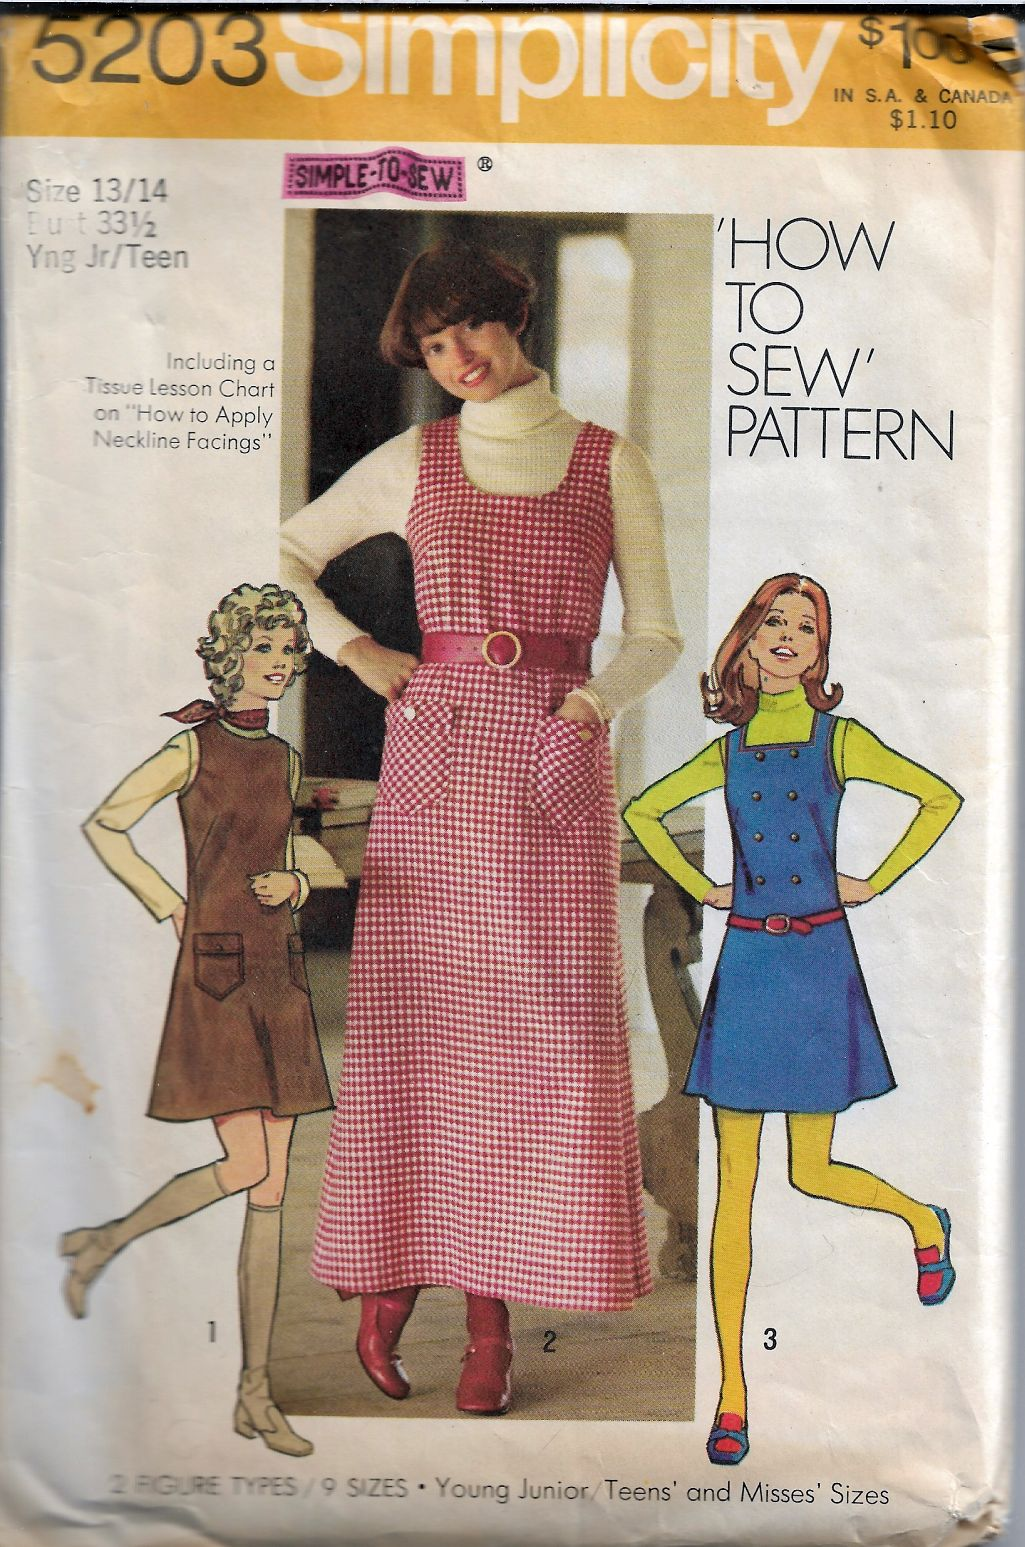 Simplicity 5203 Vintage Sewing Pattern 70's Junior Teen Jumper Dress - VintageStitching - Vintage Sewing Patterns